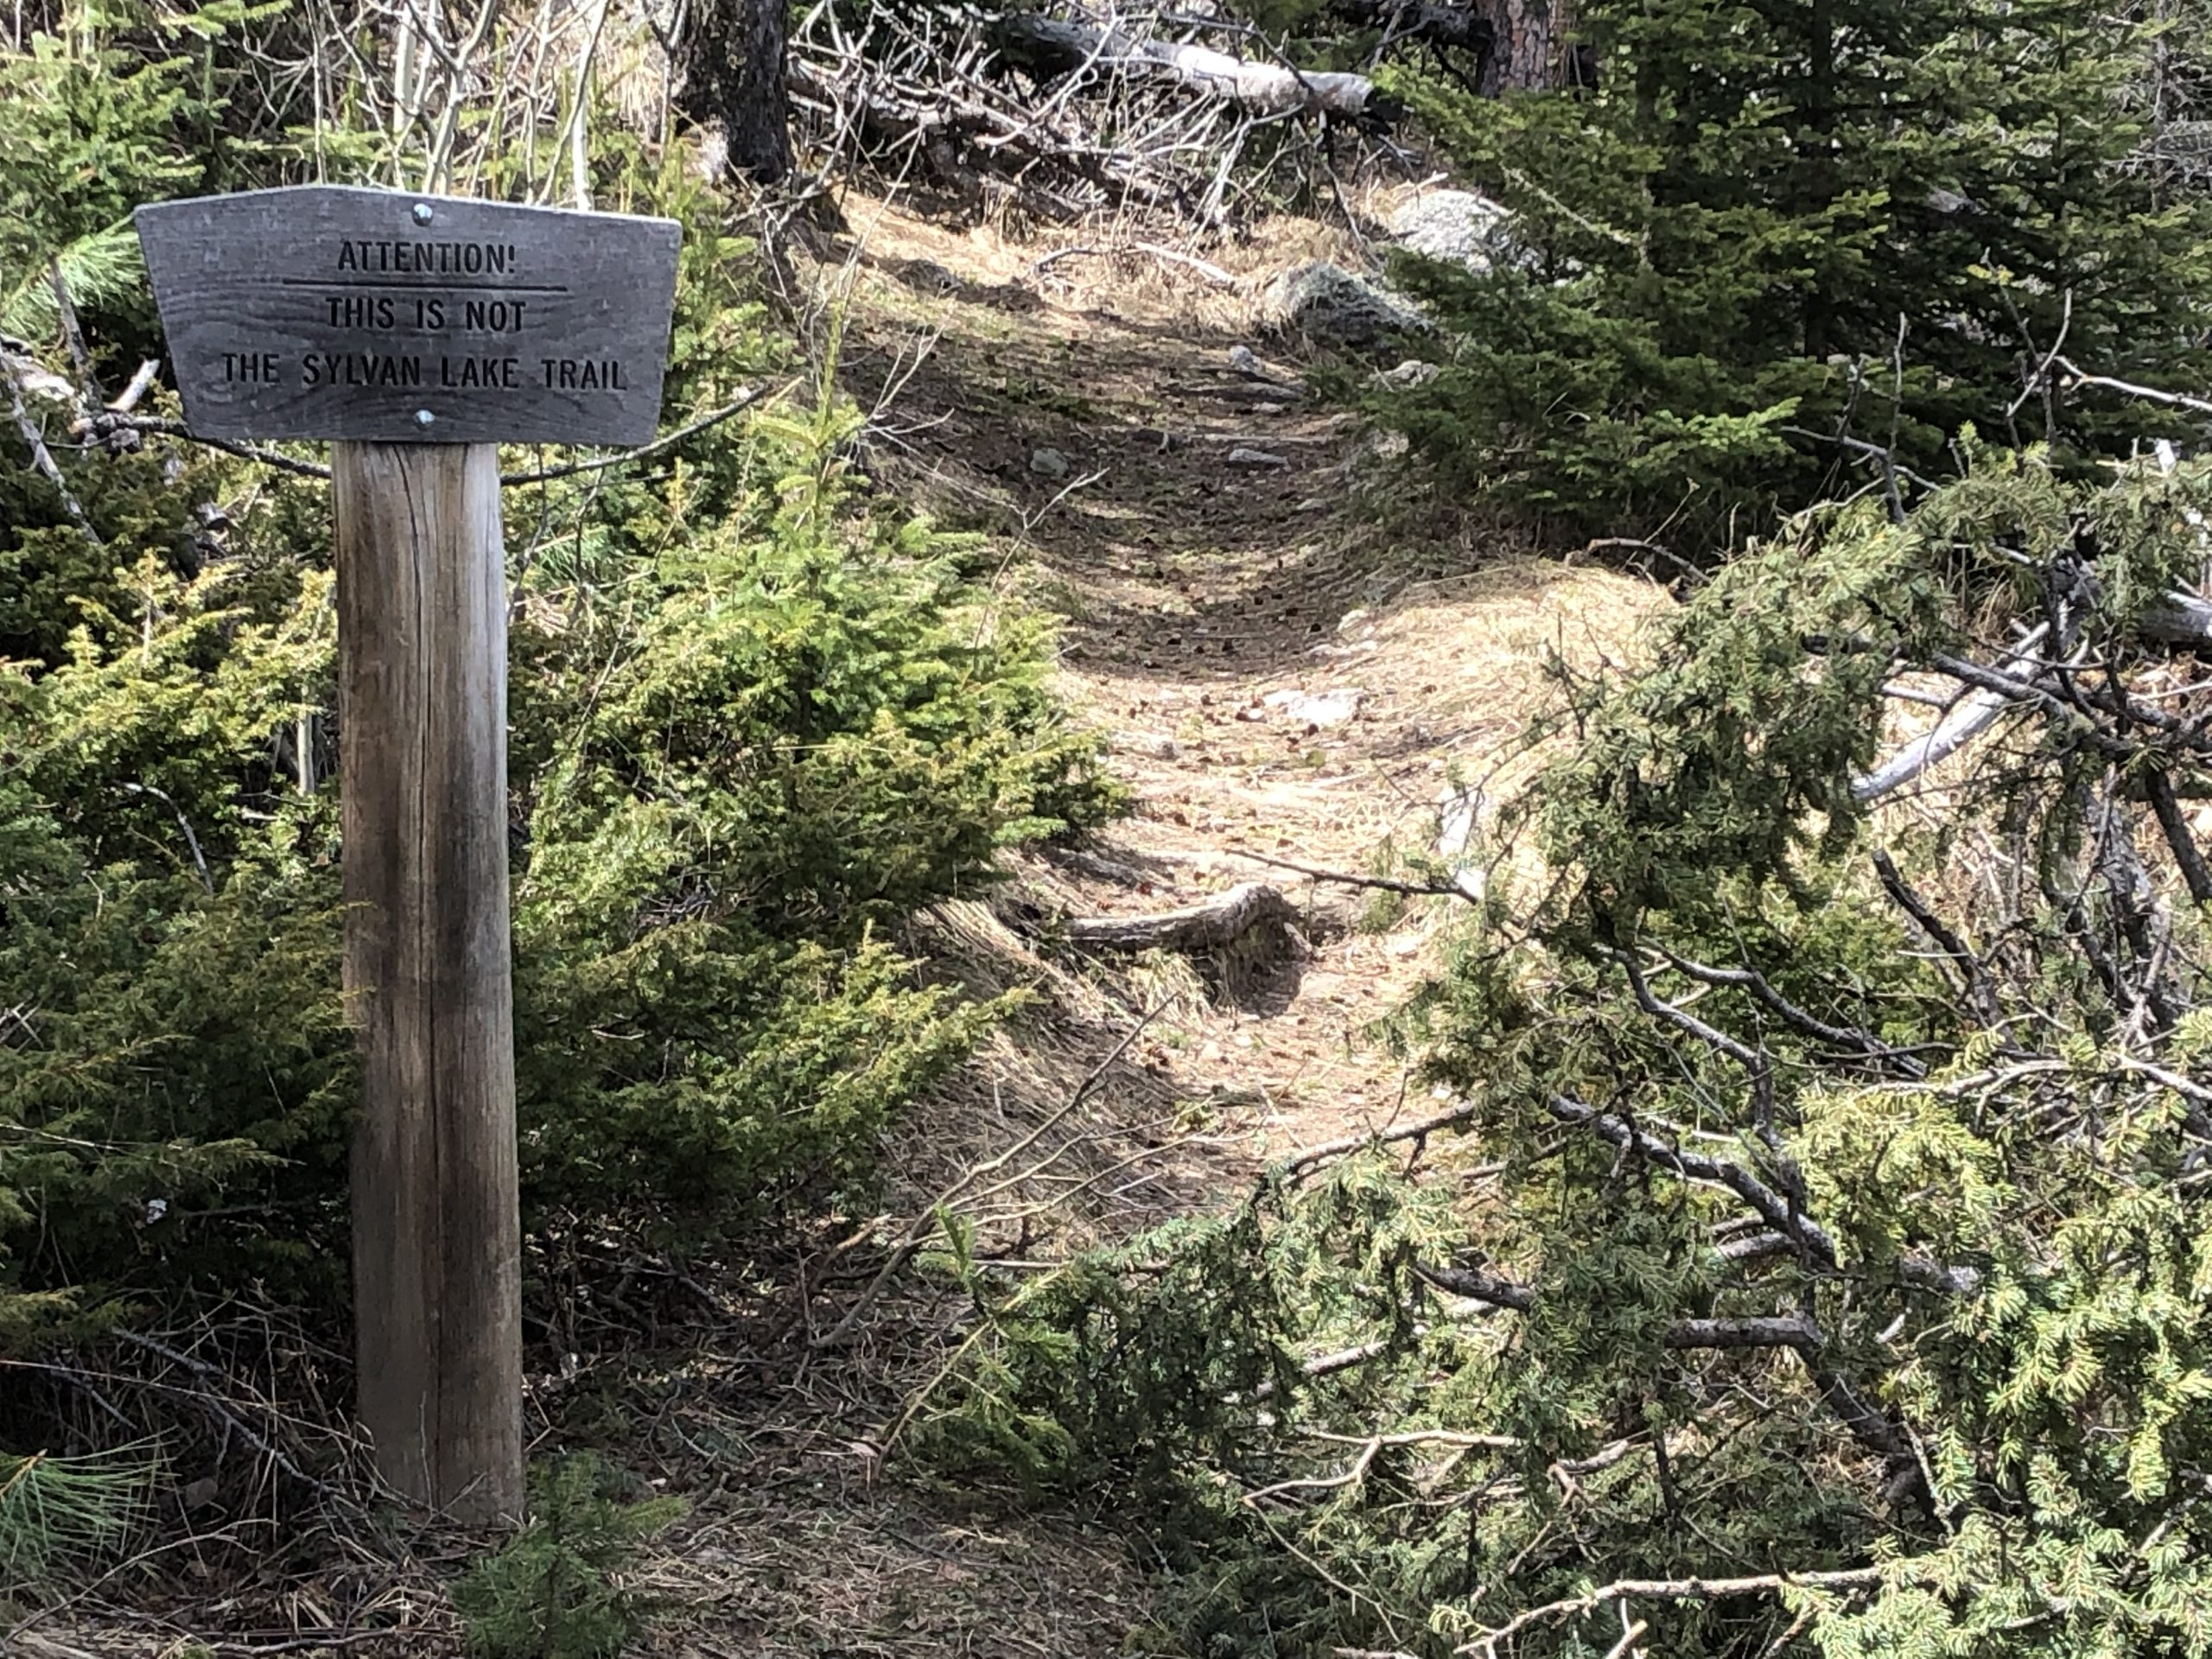 A wooden sign indicating the path beyond is not the Sylvan Lake Trail